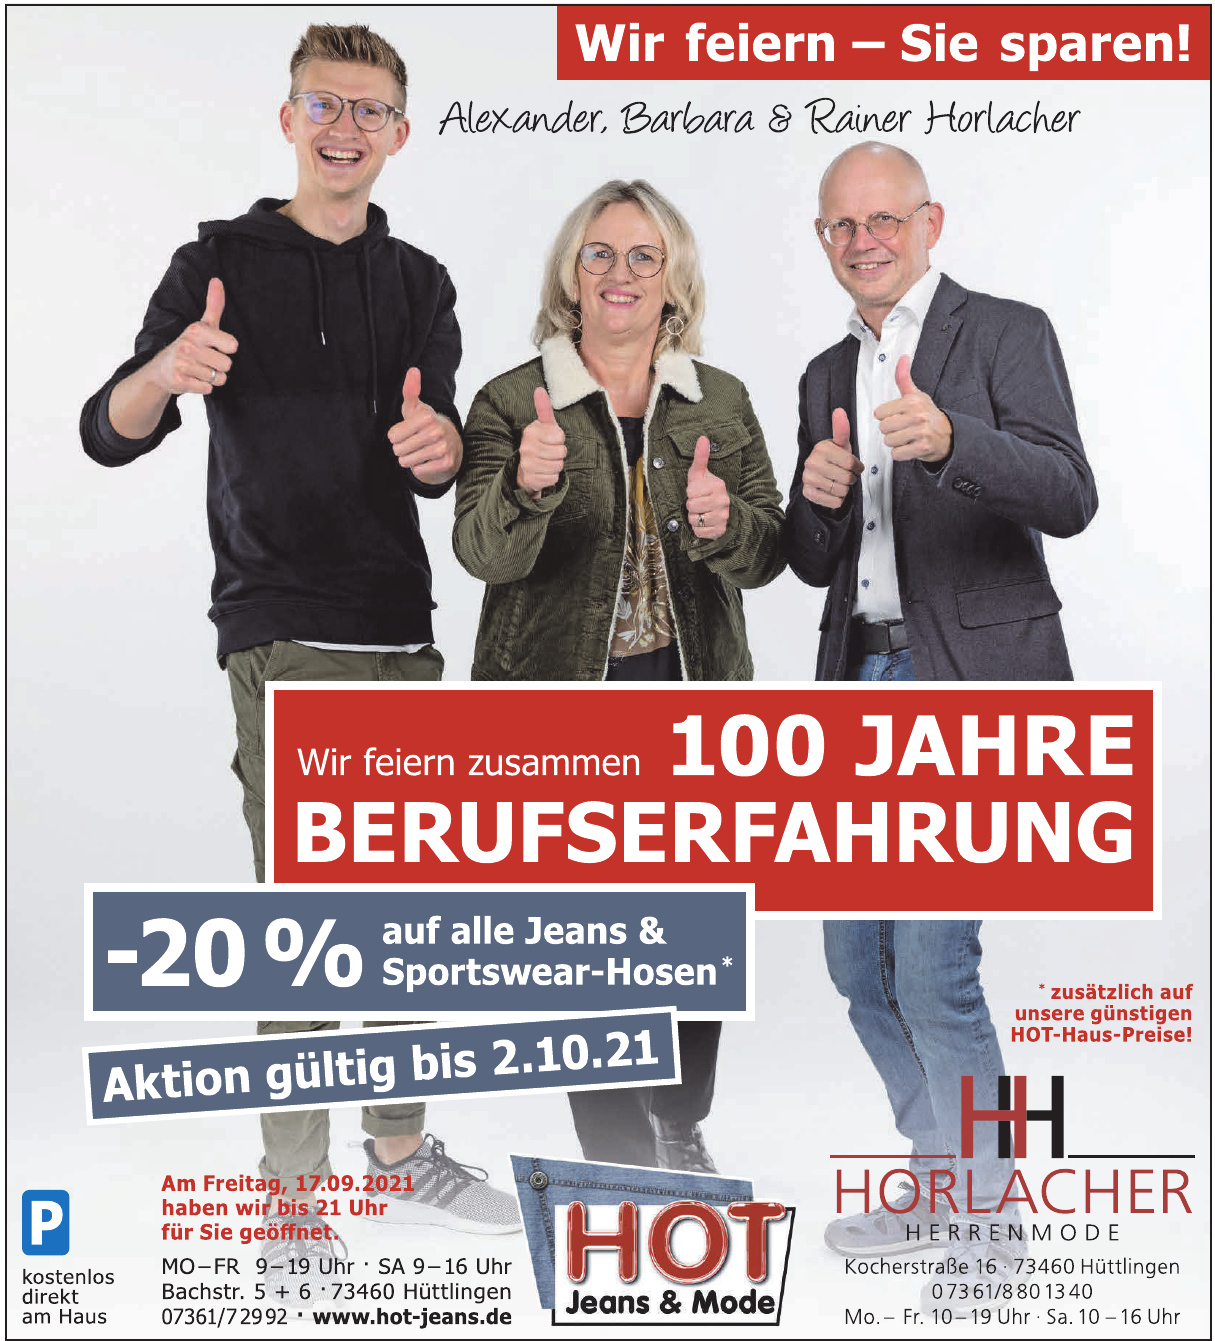 HOT Jeans & Mode GmbH & Co. KG